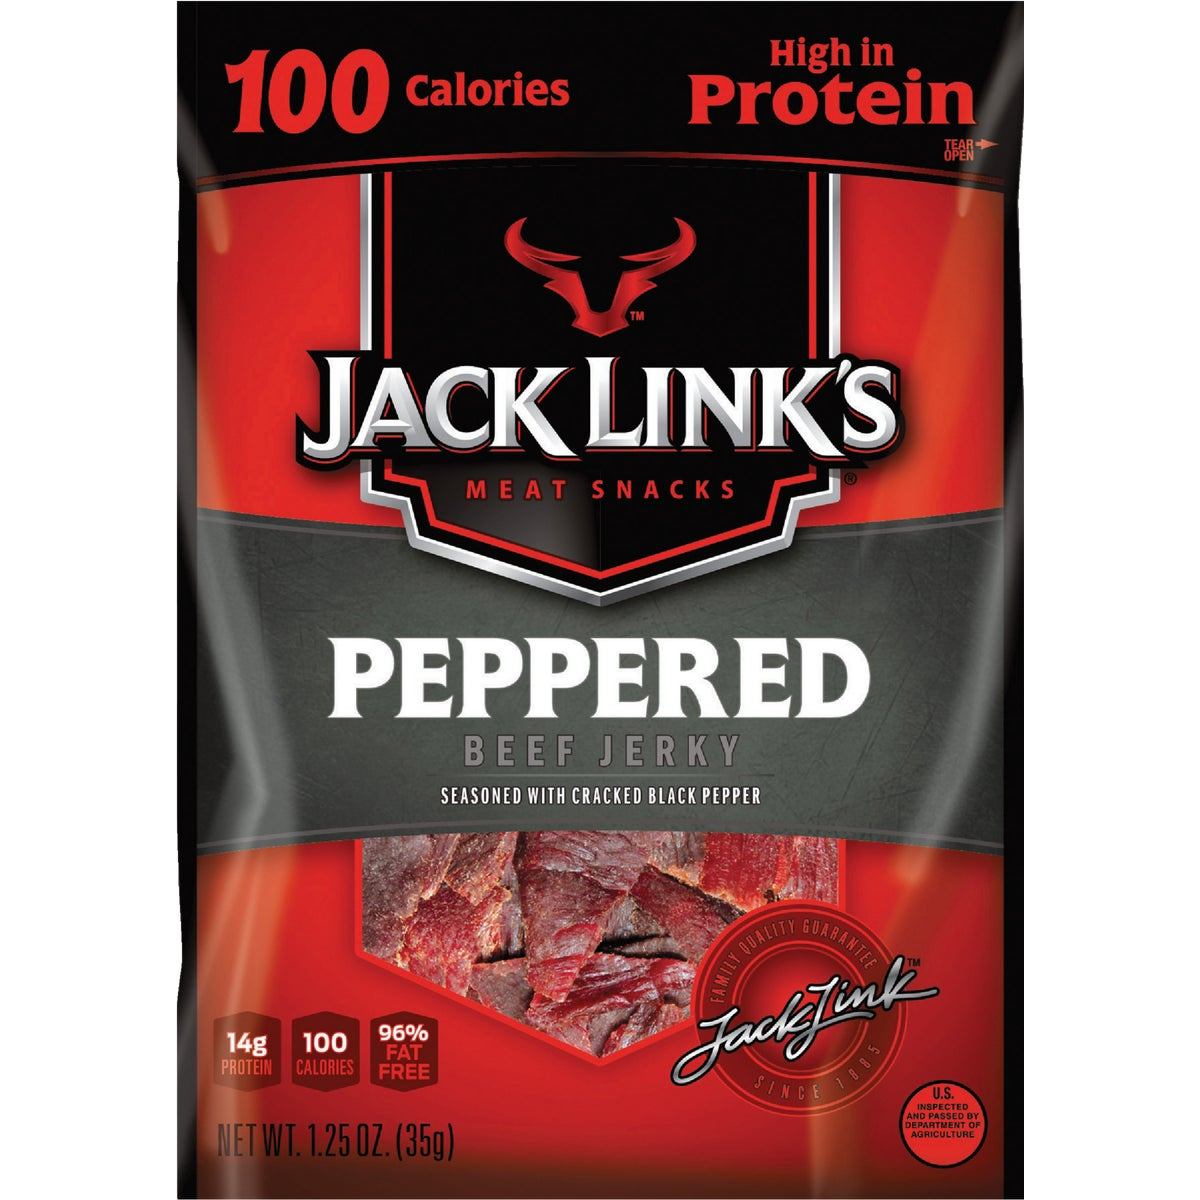 1.5OZ PEPPERED JERKY